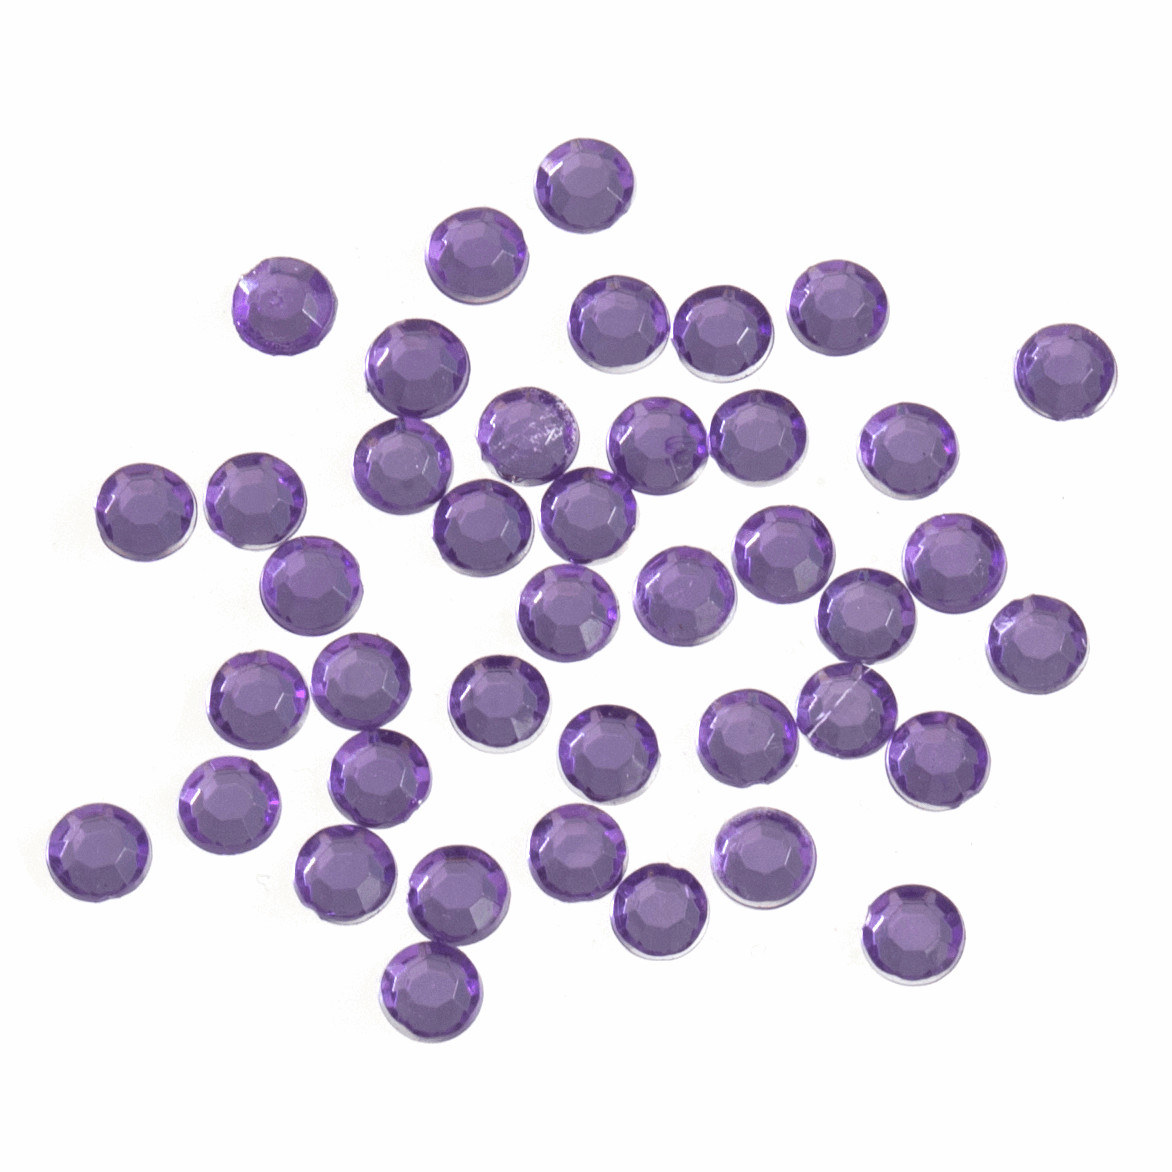 Picture of Acrylic Stones: Glue-On: Round: Medium-5mm Lilac